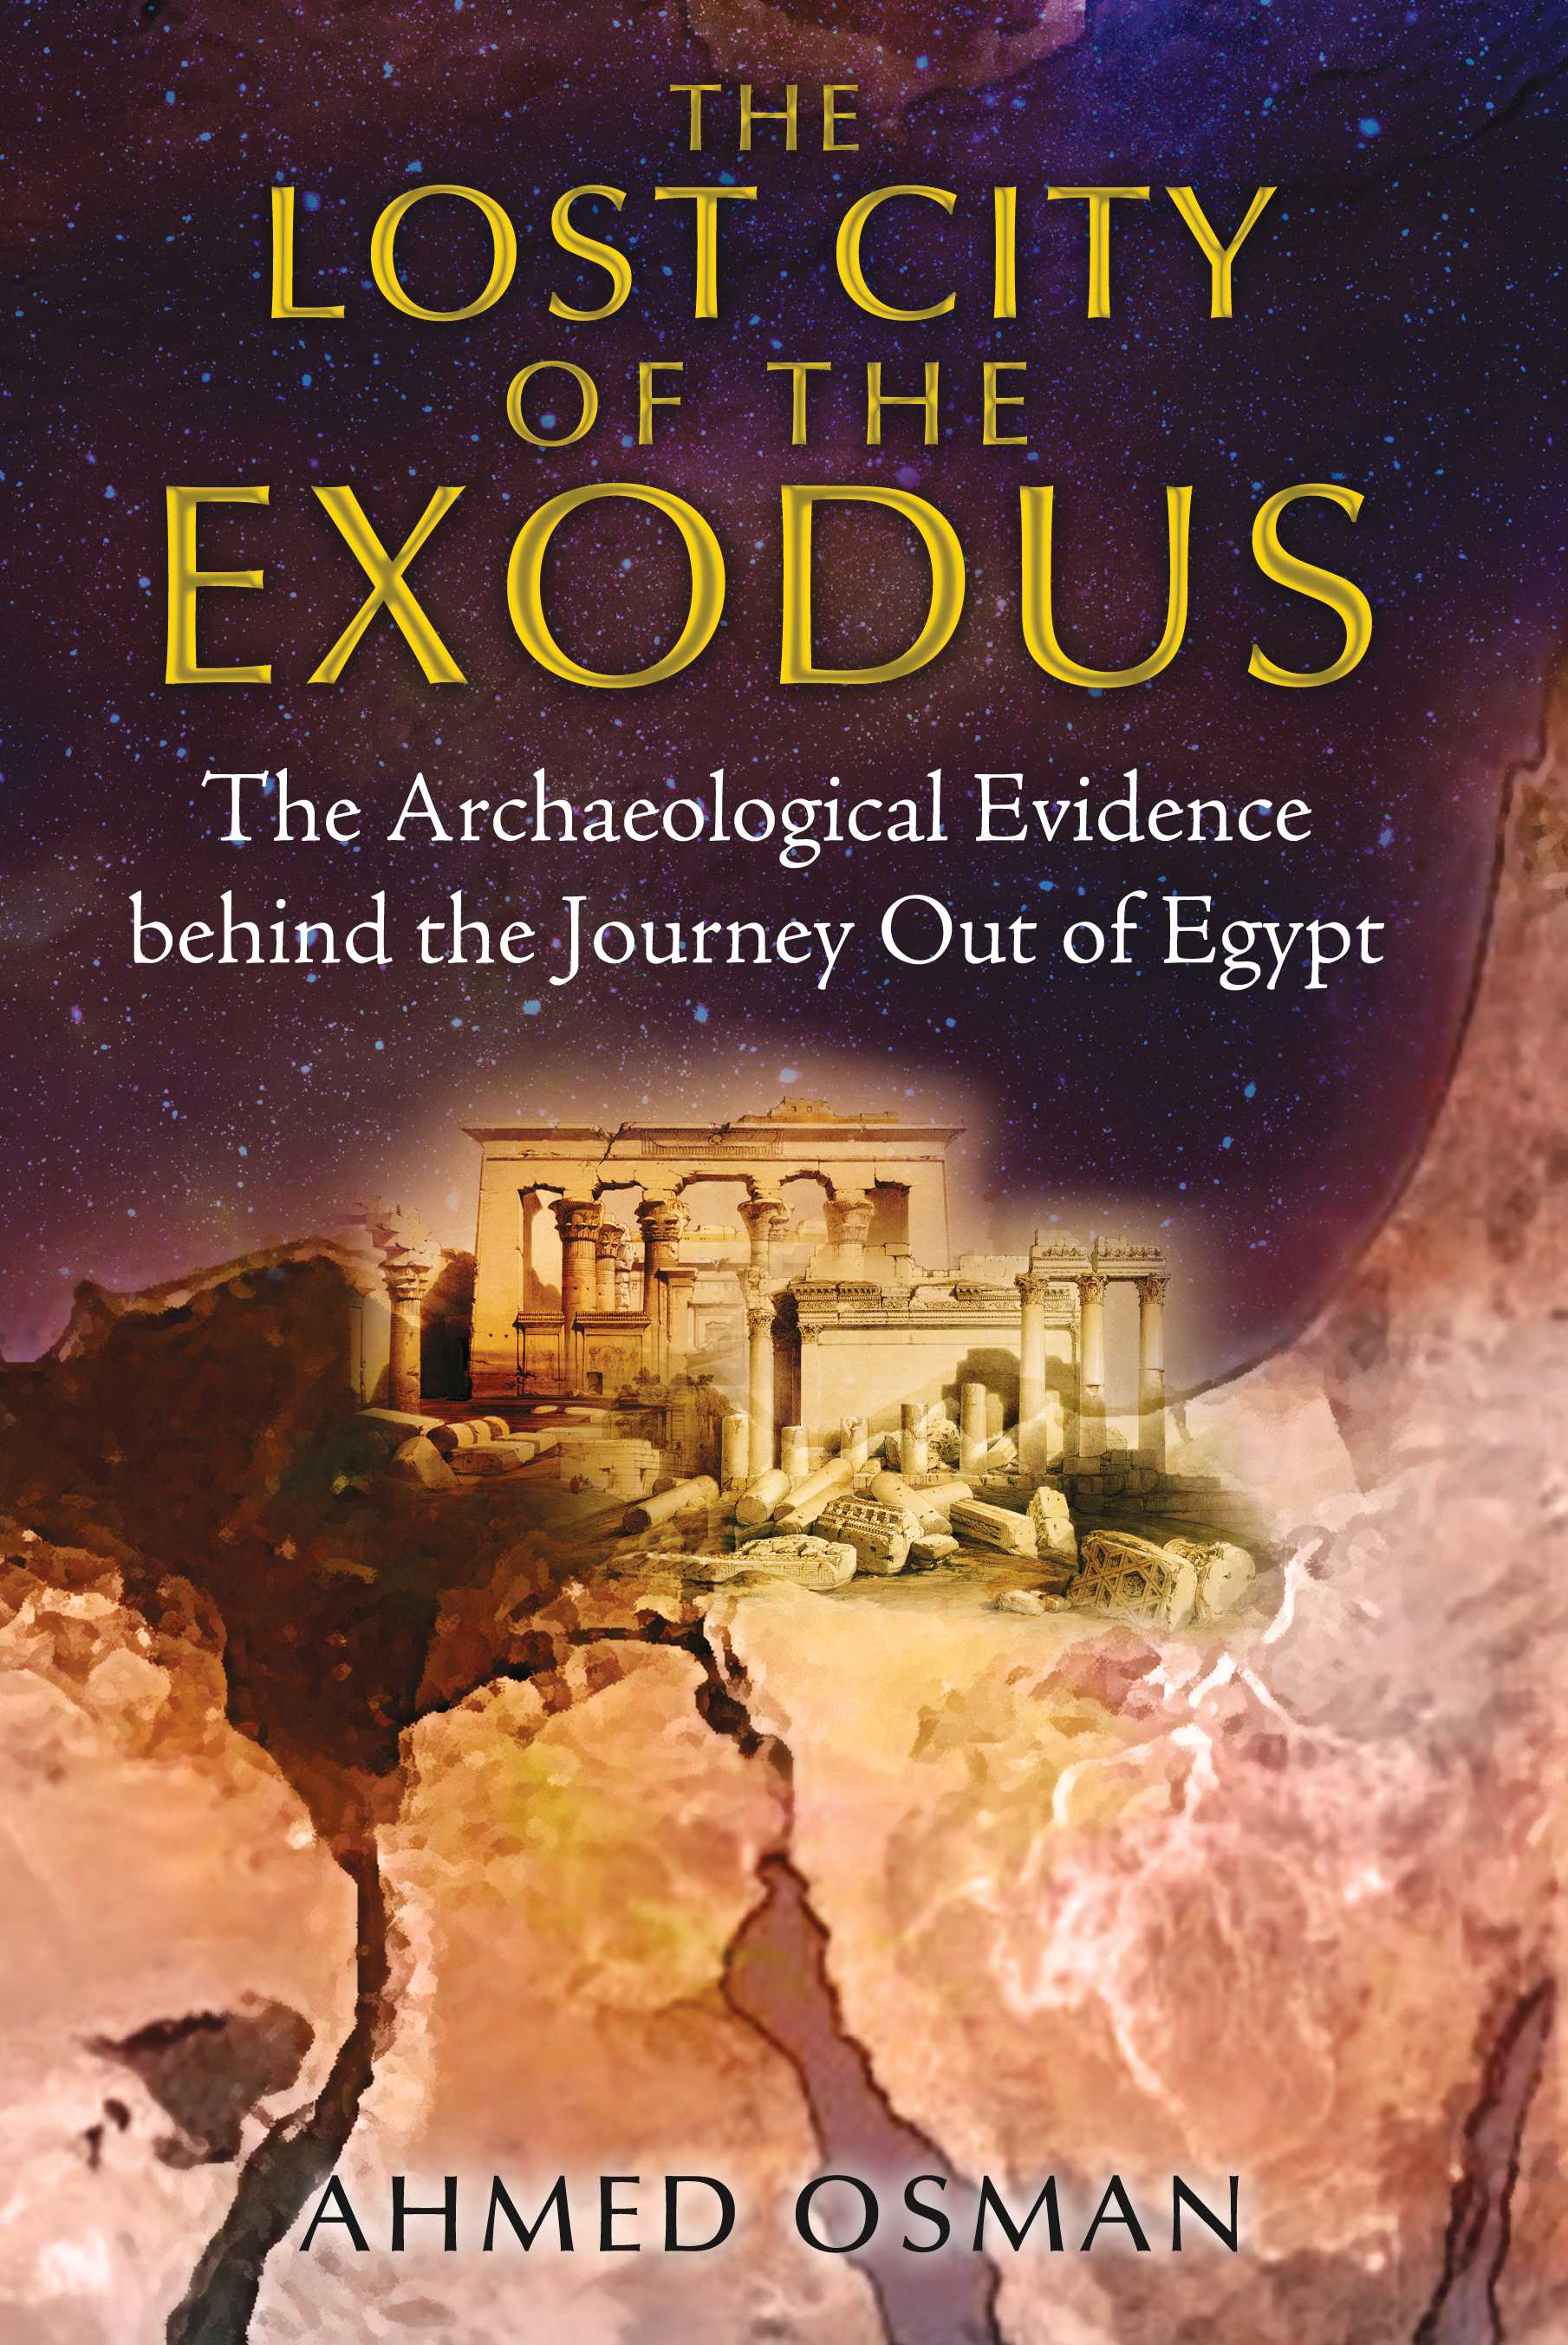 The-lost-city-of-the-exodus-9781591431893_hr